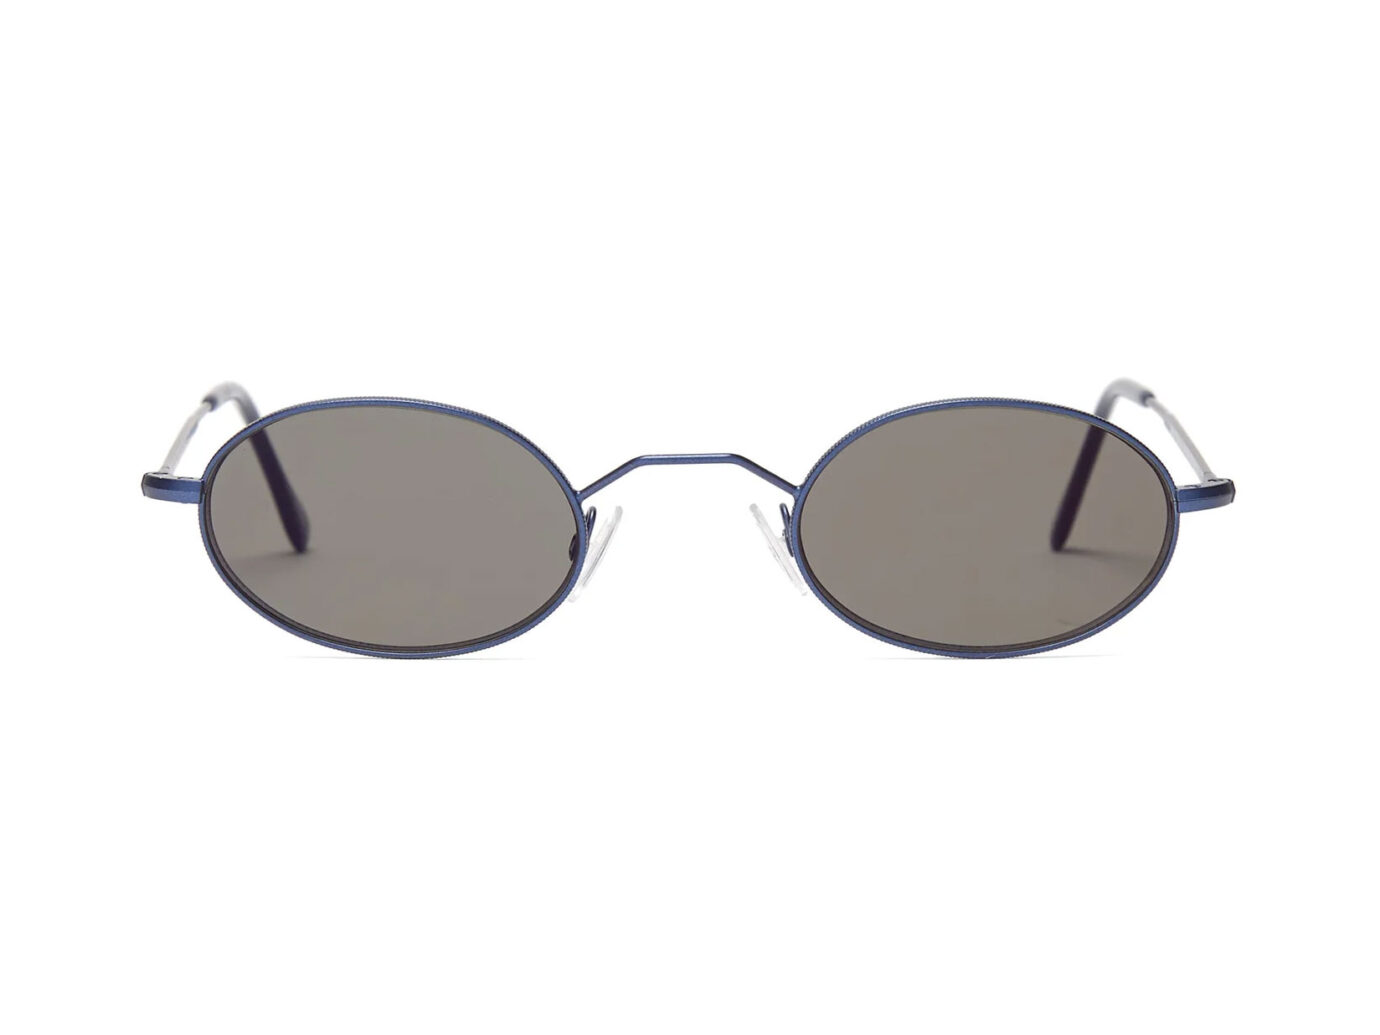 ANDY WOLF Armstrong oval metal sunglasses